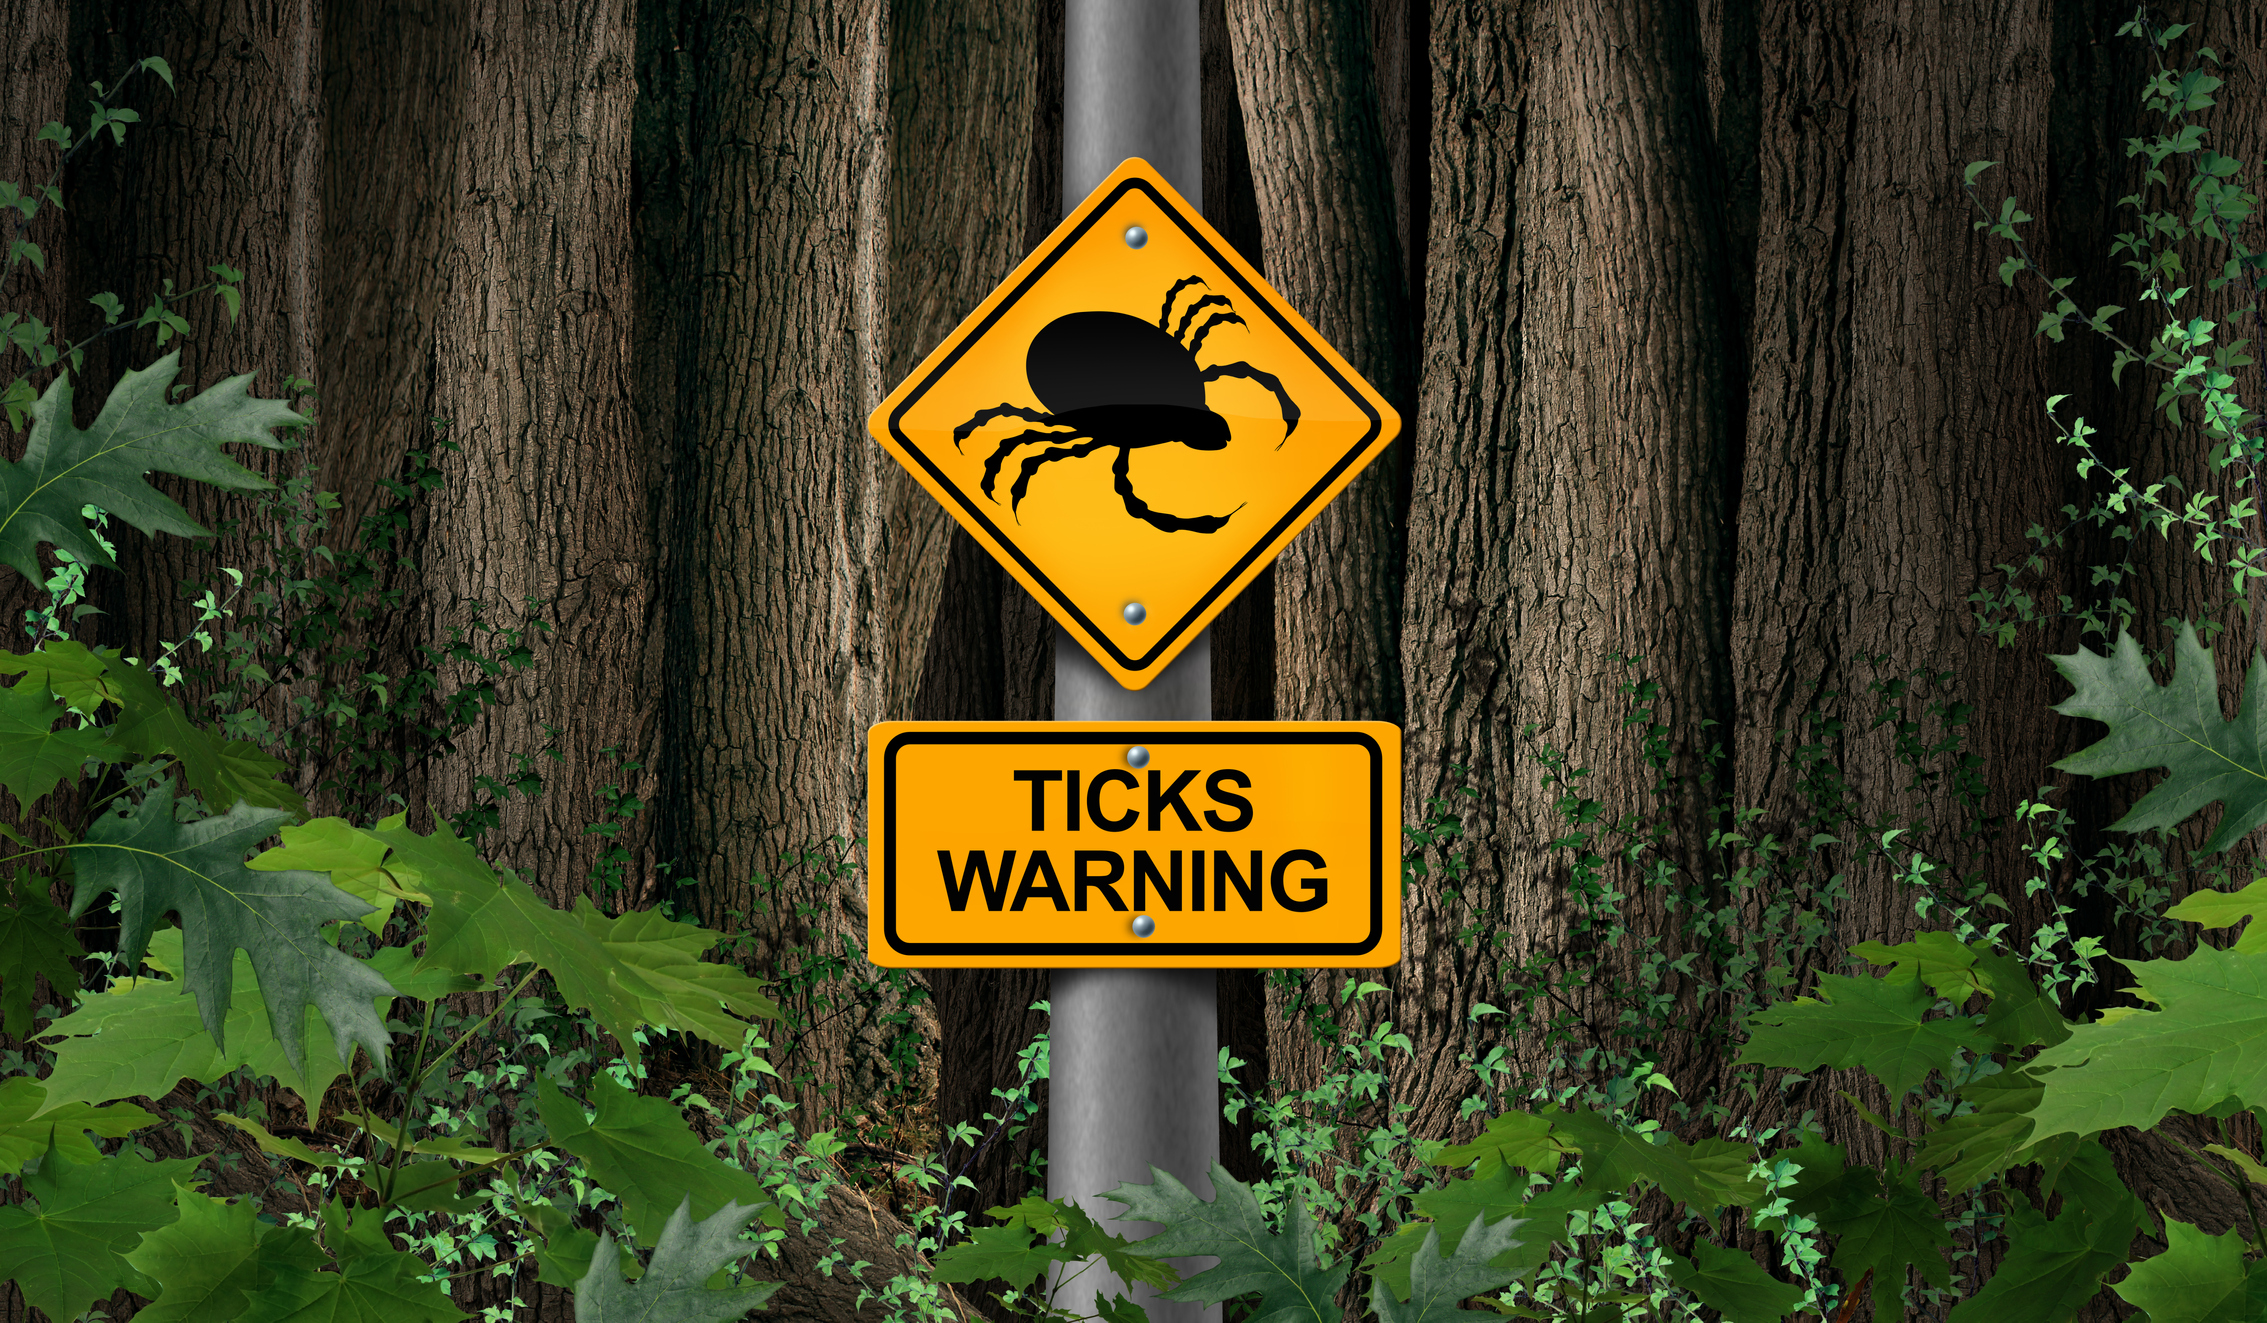 How To Identify Different Kinds Of Ticks - Featured Image